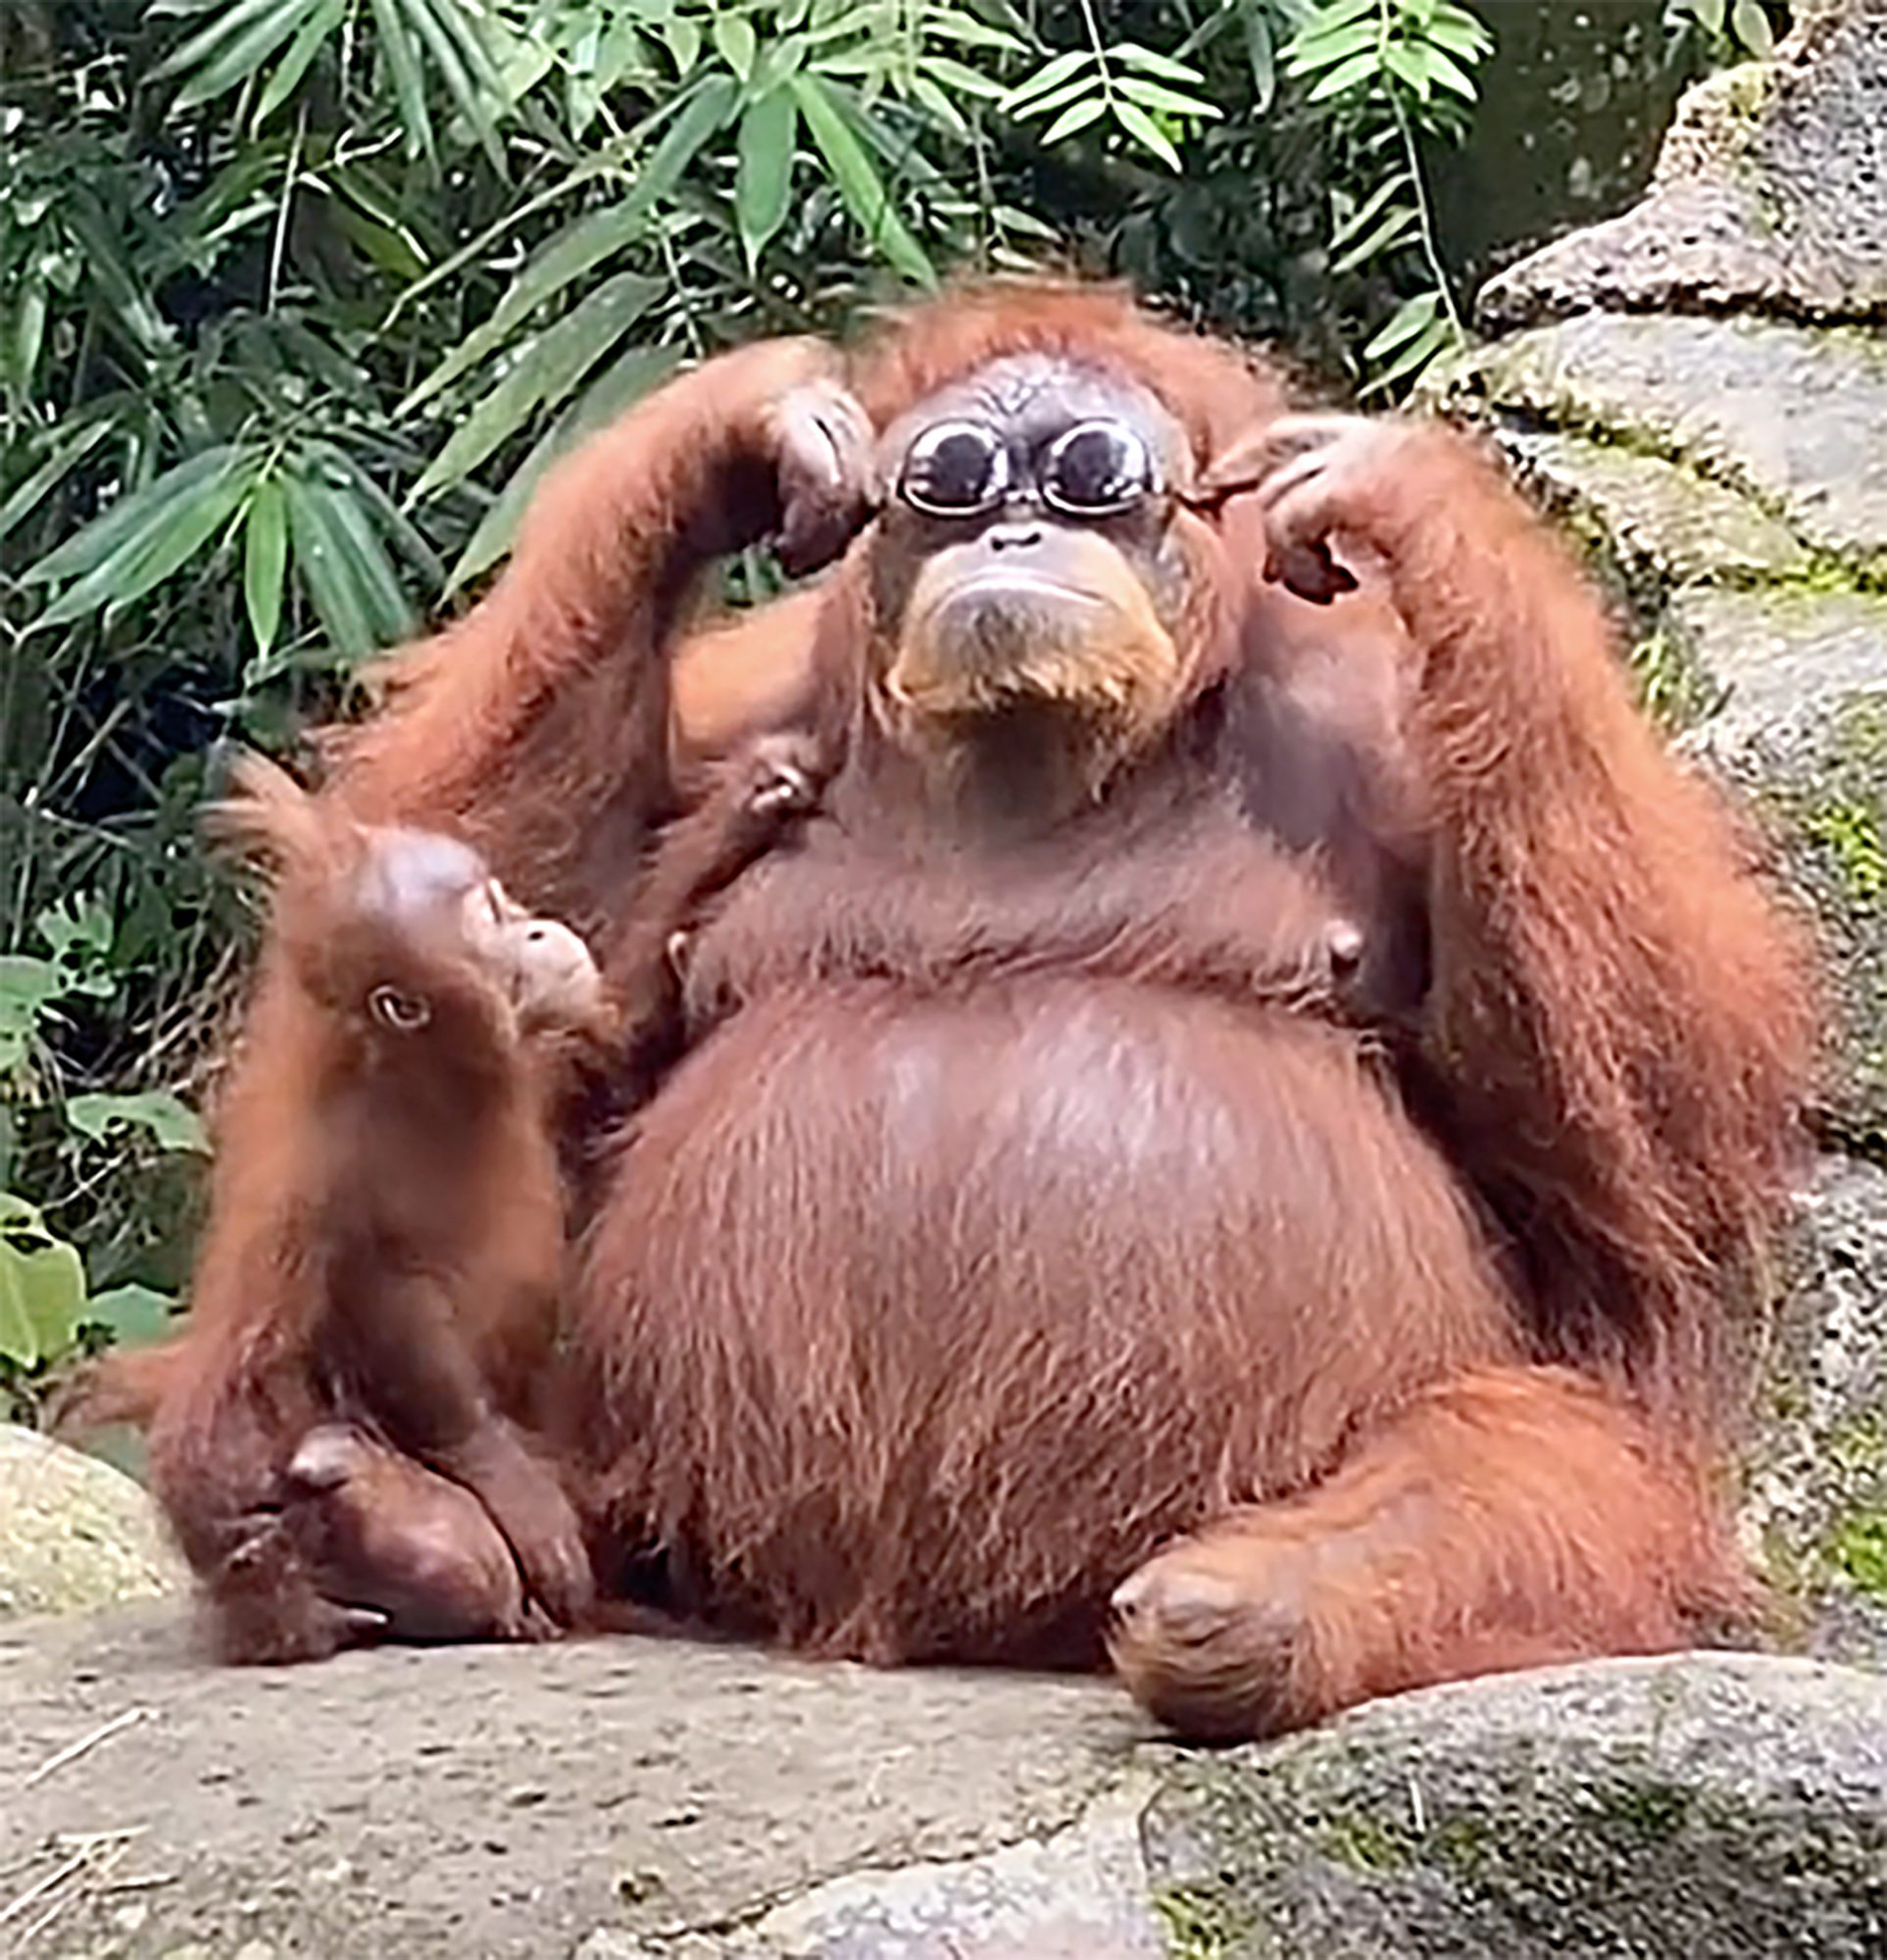 orangutan with her baby trying on sunglasses that were accidentally dropped in her area